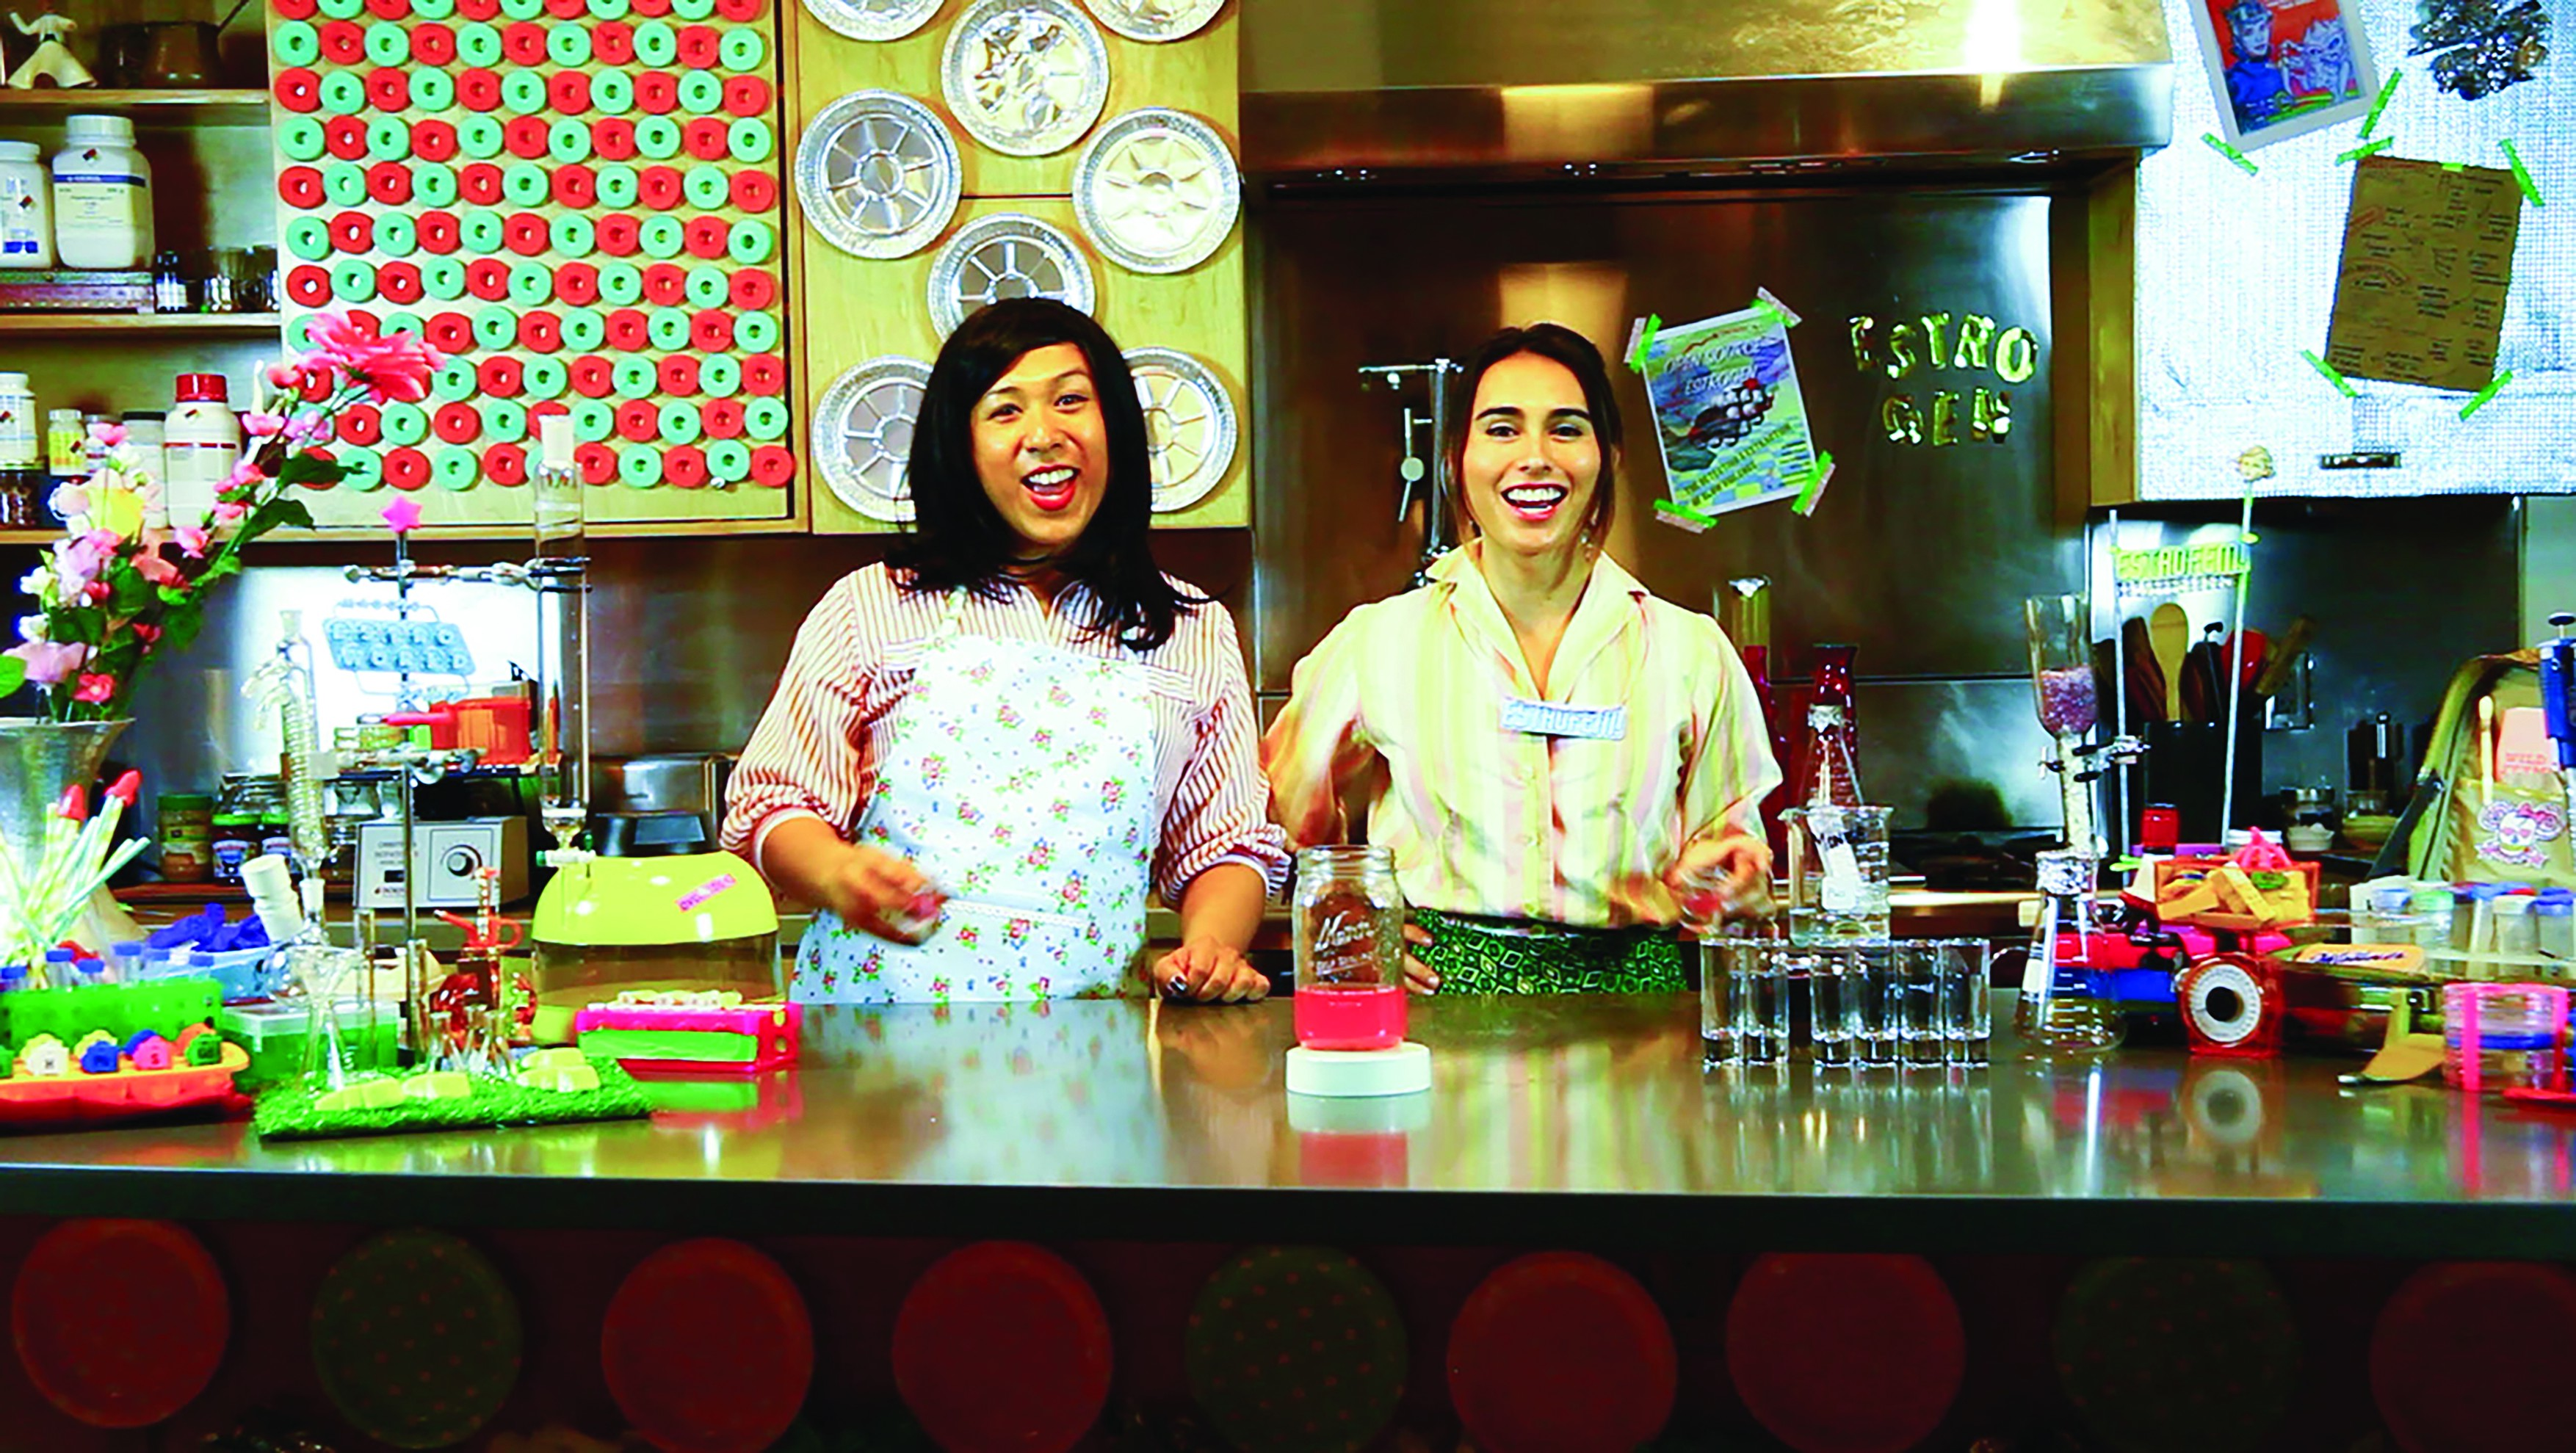 Two television hosts stand in bright and colorful kitchen with science lab kit making homemade estrogen hormones